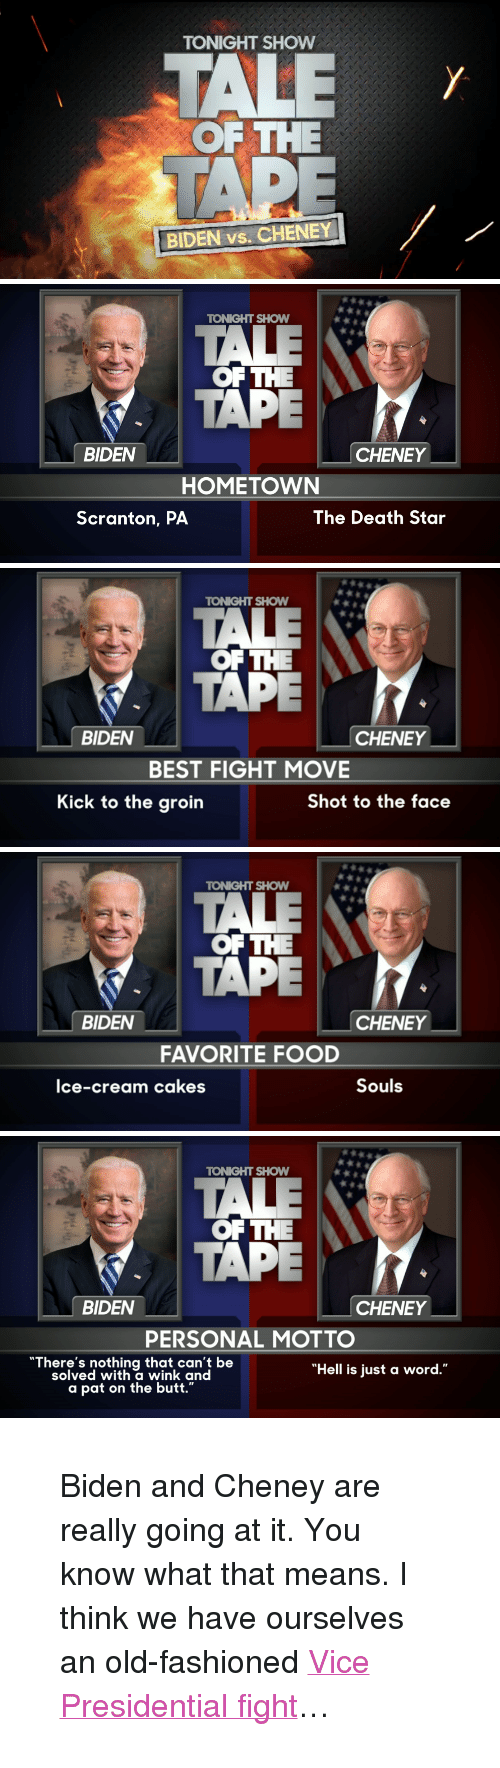 """Butt, Death Star, and Food: TONIGHT SHOW  OF THE  BIDEN vs. CHENEY   TOKGHT SHOW  OFTHE  TAPE  BIDEN  CHENEY  HOMETOWN  Scranton, PA  The Death Star   TONIGHT SHOW  俶俶..  OF THE  TAPE  BIDEN  CHENEY  BEST FIGHT MOVE  Kick to the groin  Shot to the face   TONIGHT SHOW  OF THE  TAPE  BIDEN  CHENEY  FAVORITE FOOD  lce-cream cakes  Souls   TONIGHT SHOW  OF THE  TAPE  BIDEN  CHENEY  PERSONAL MOTTO  """"There's nothing that can't be  solved with a wink and  """"Hell is just a word.""""  a pat on the butt."""" <blockquote> <p>Biden and Cheney are really going at it. You know what that means. I think we have ourselves an old-fashioned <a href=""""http://www.nbc.com/the-tonight-show/segments/8681"""" target=""""_blank"""">Vice Presidential fight</a>…</p> </blockquote>"""